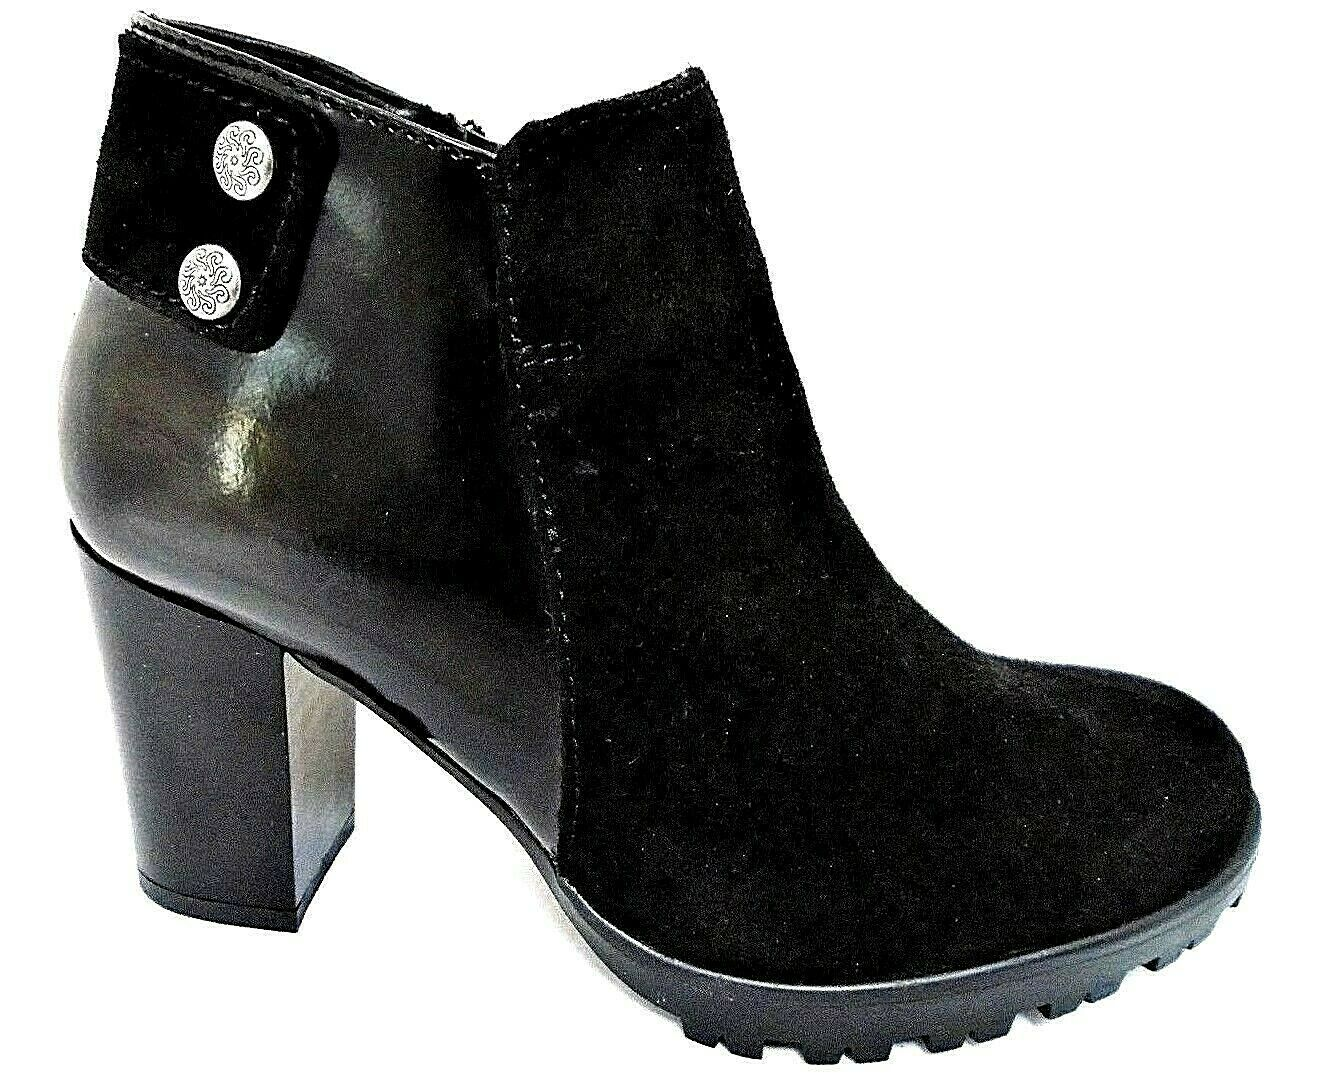 AEROS FABIA LADIES BLACK SUEDE & PATENT LEATHER ANKLE BOOTS WOMENS UK 8 - EUR 41